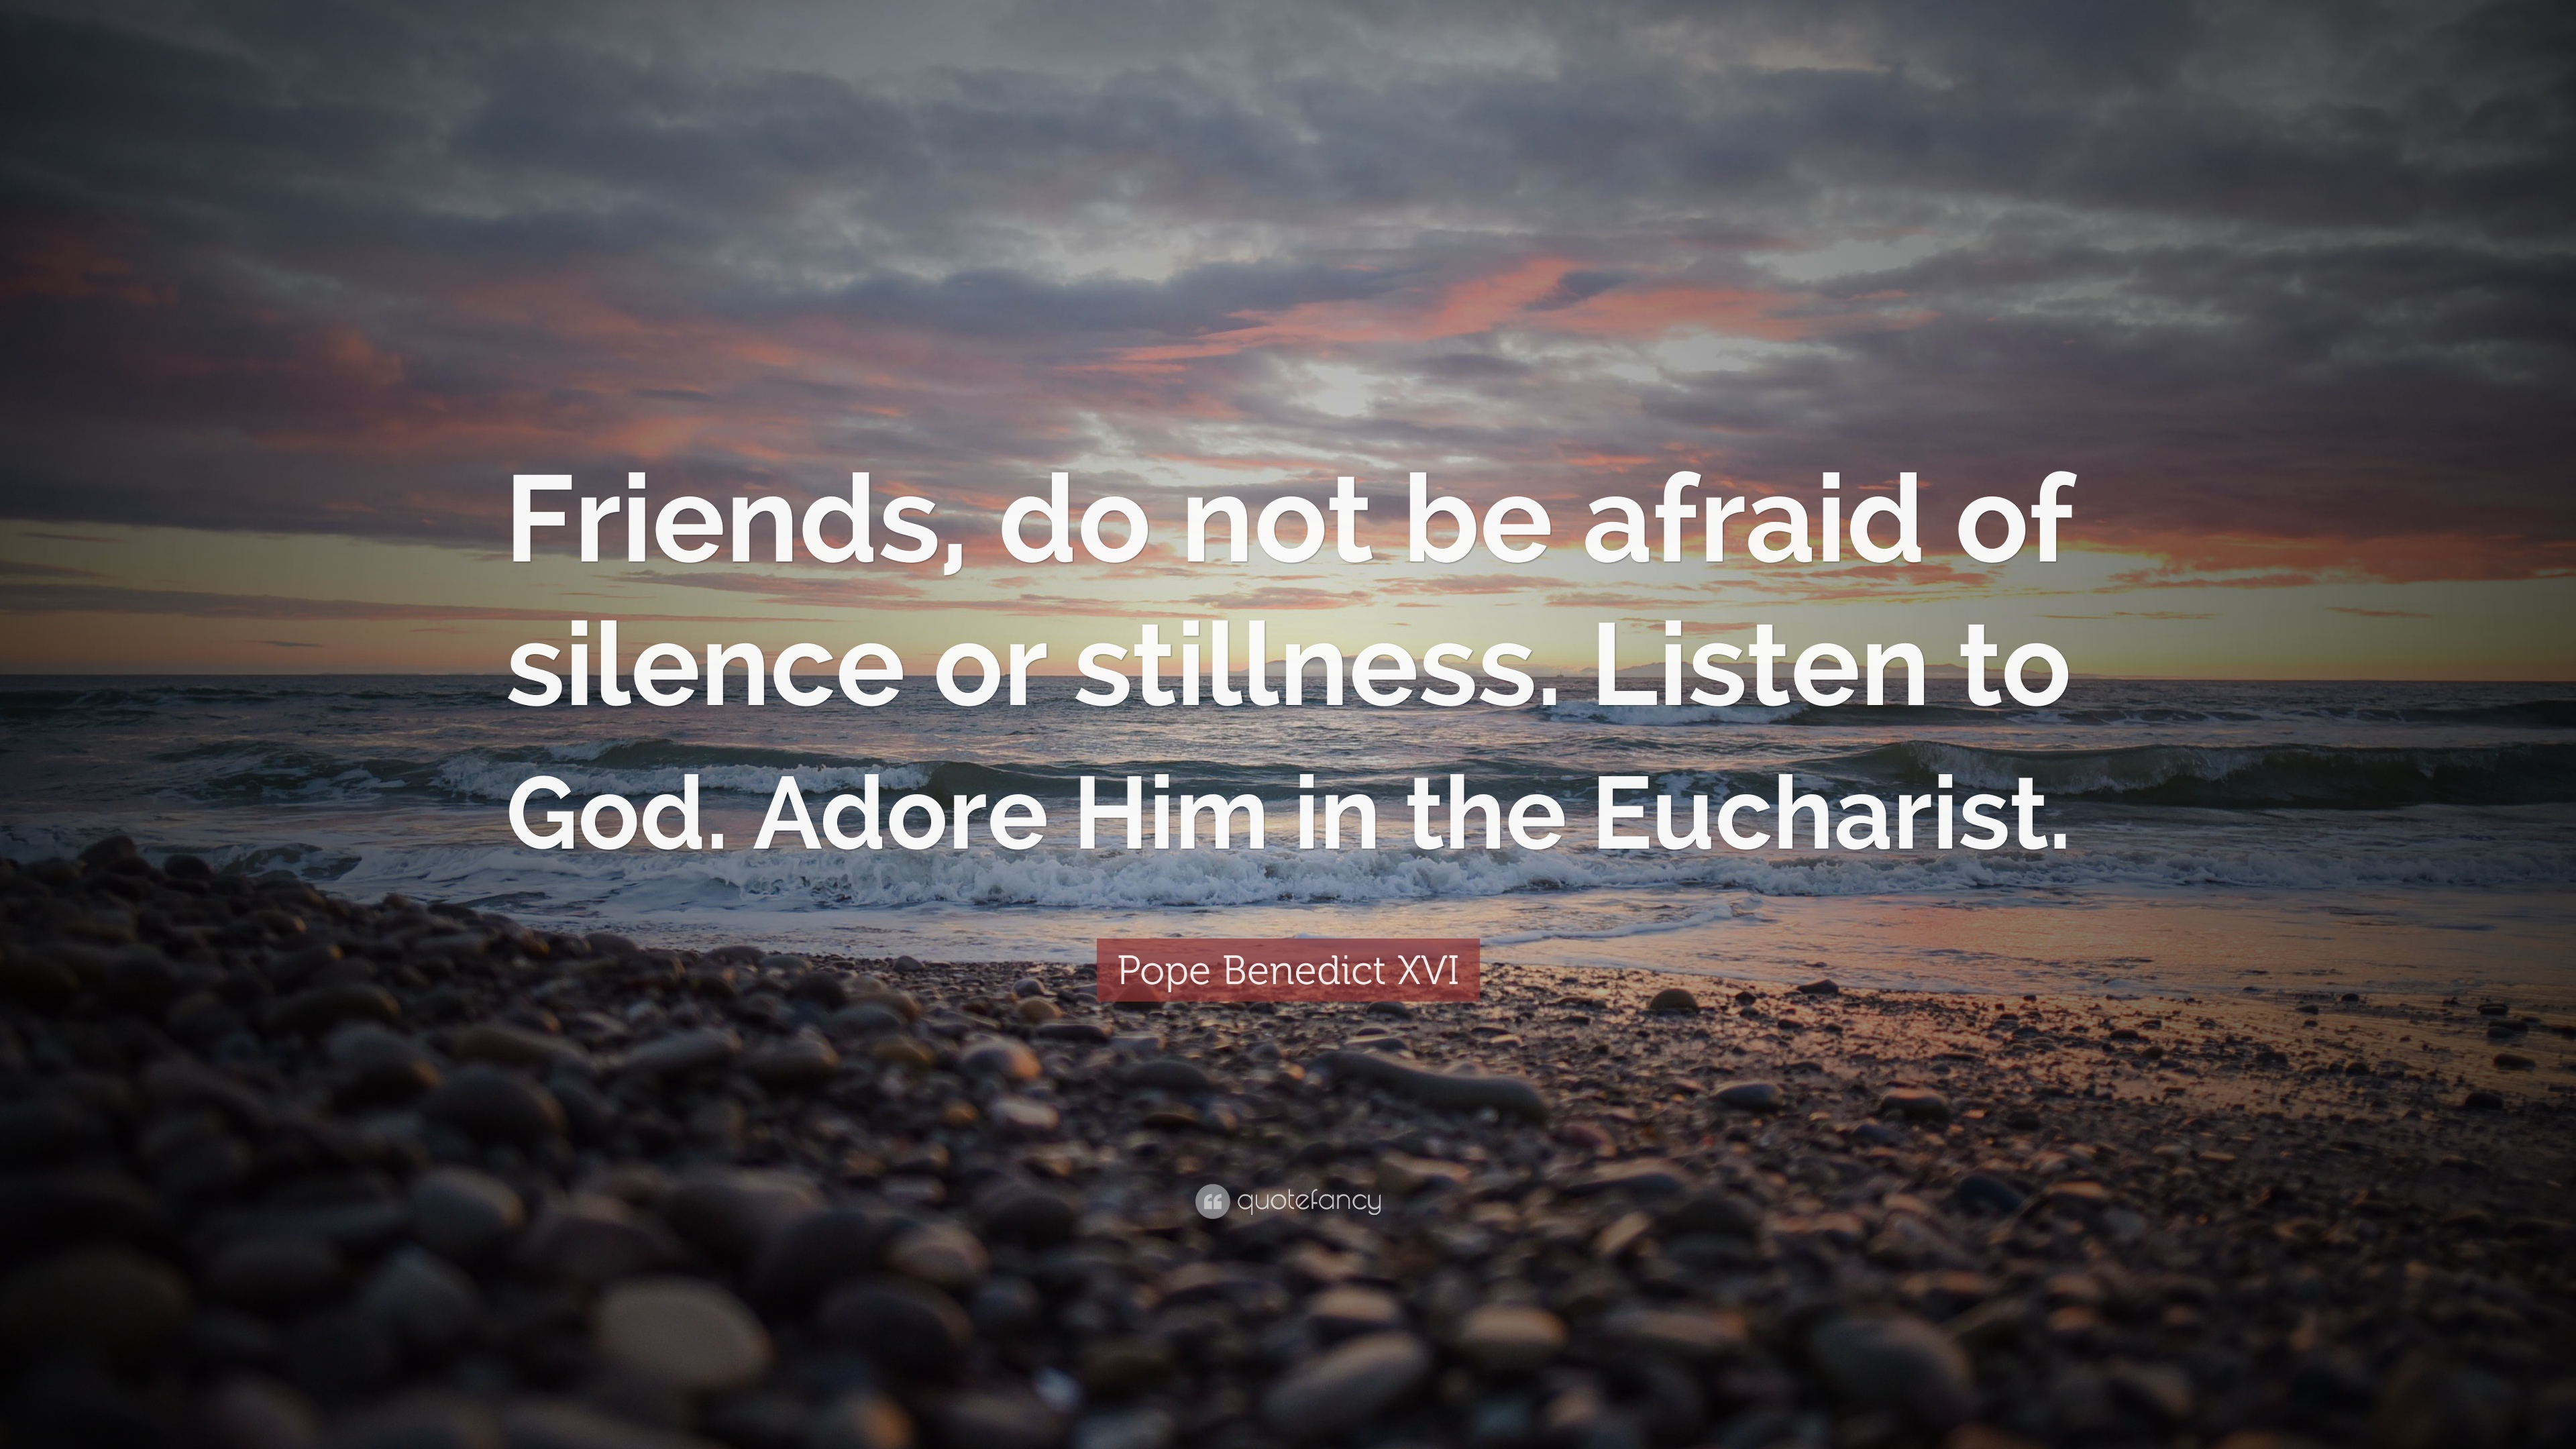 Pope Benedict Xvi Quote Friends Do Not Be Afraid Of Silence Or